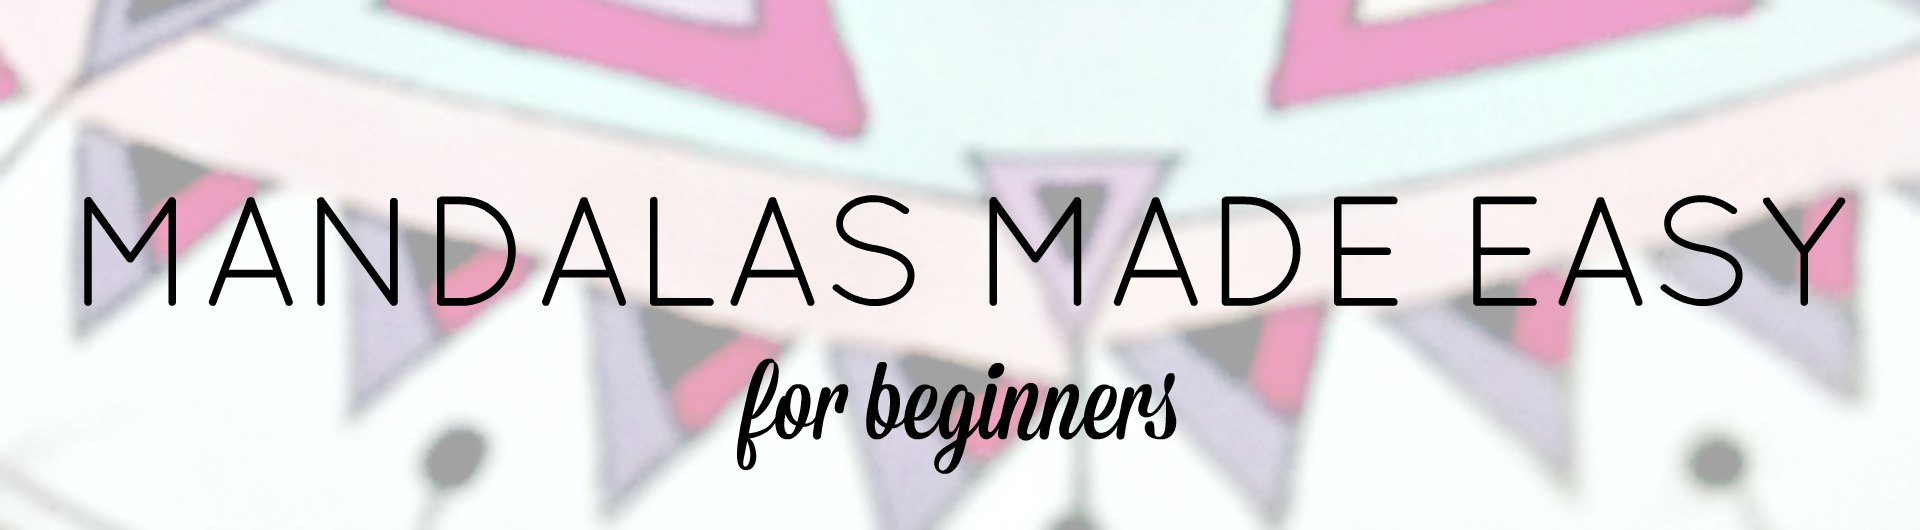 MANDALAS MADE EASY banner